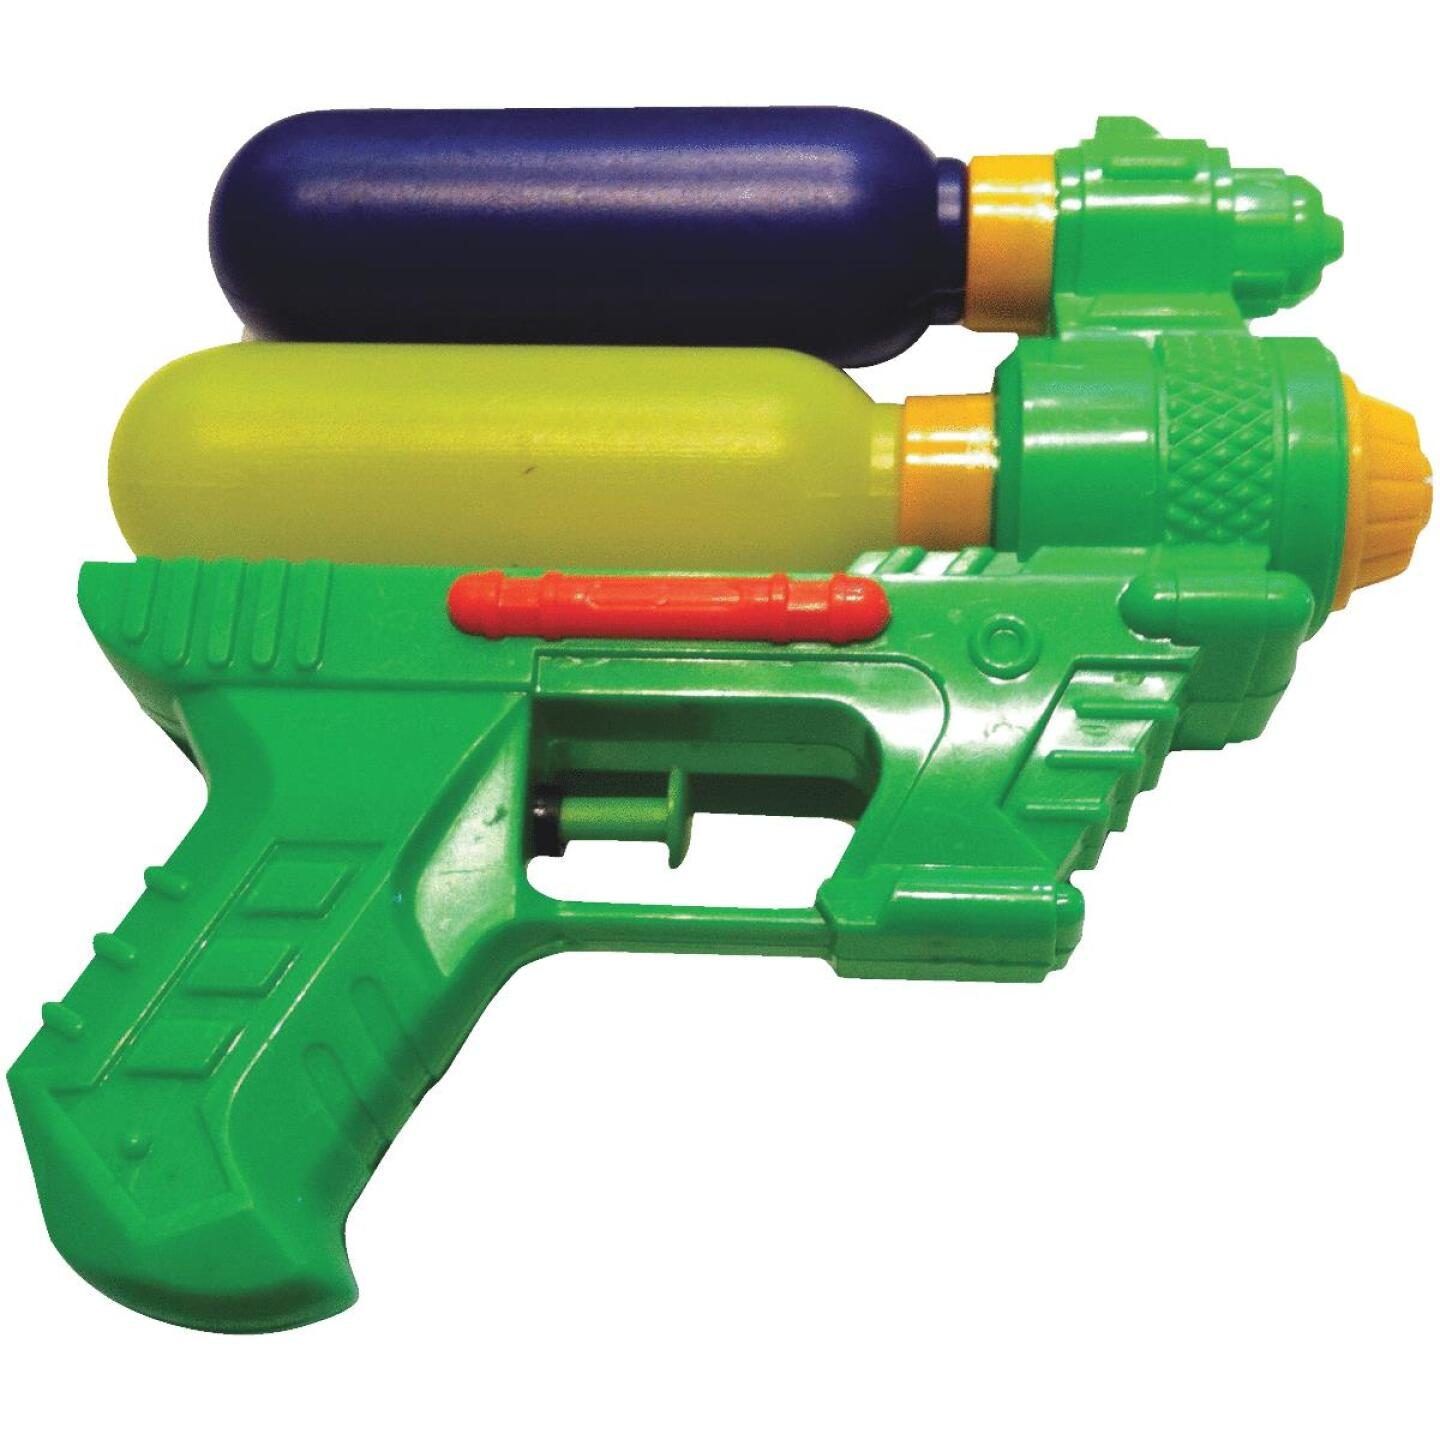 Water Sports Water Gun Image 1